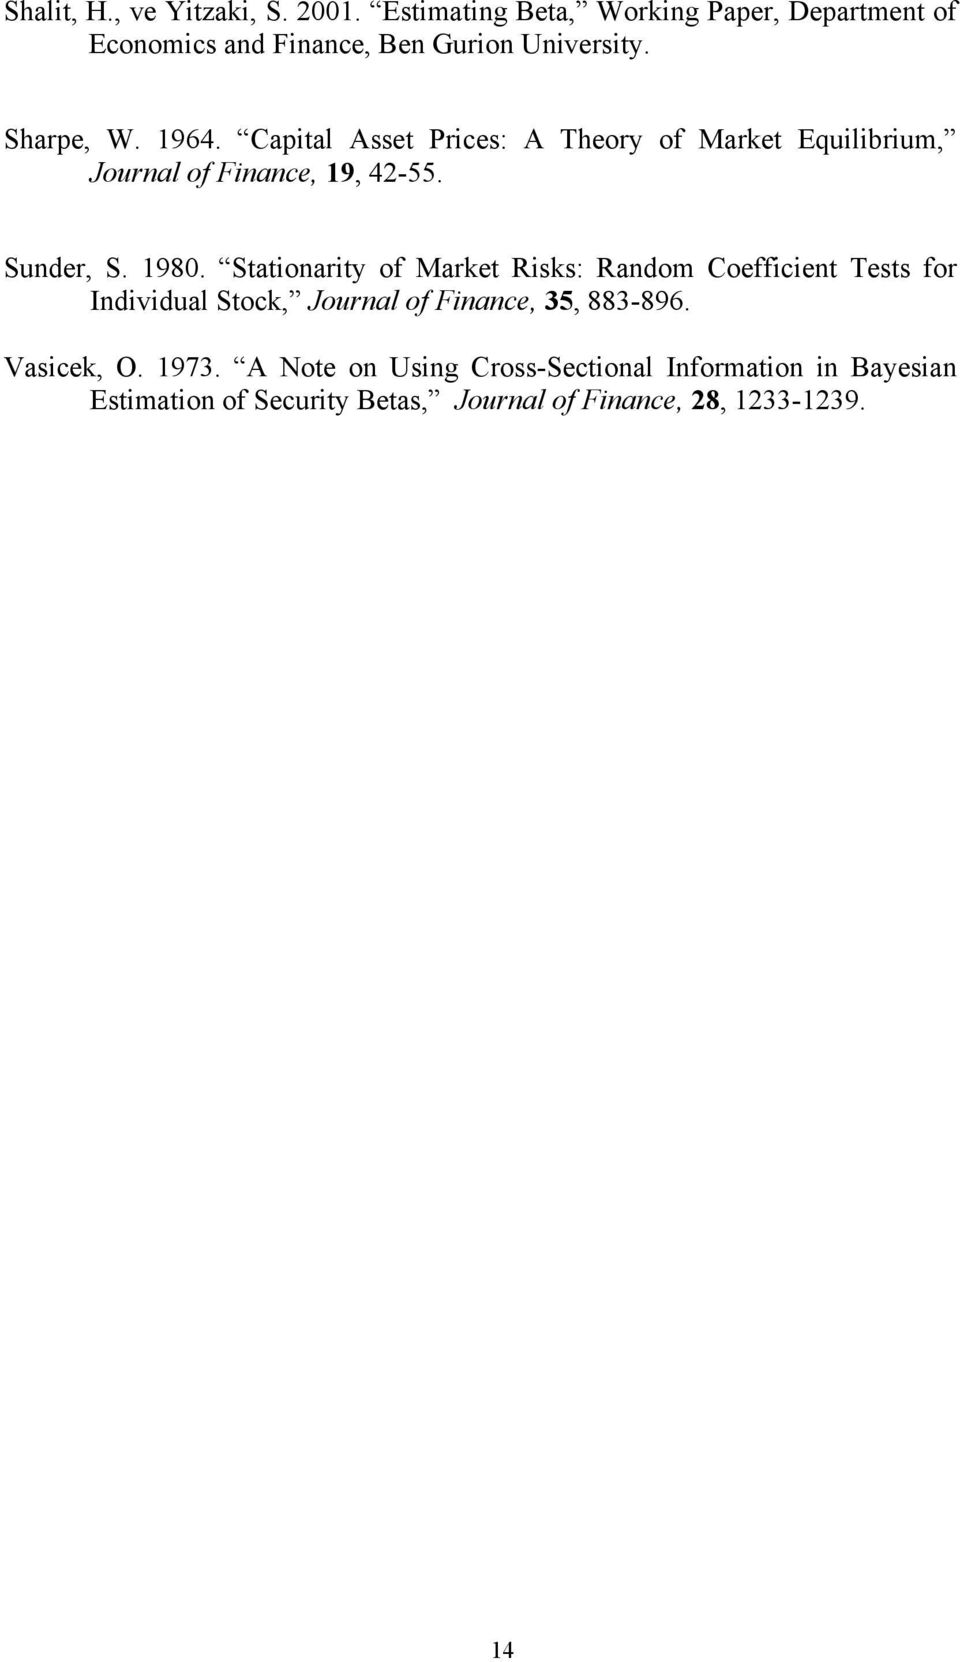 Stationarity of Market Risks: Random Coefficient Tests for Individual Stock, Journal of Finance, 35, 883-896. Vasicek, O.